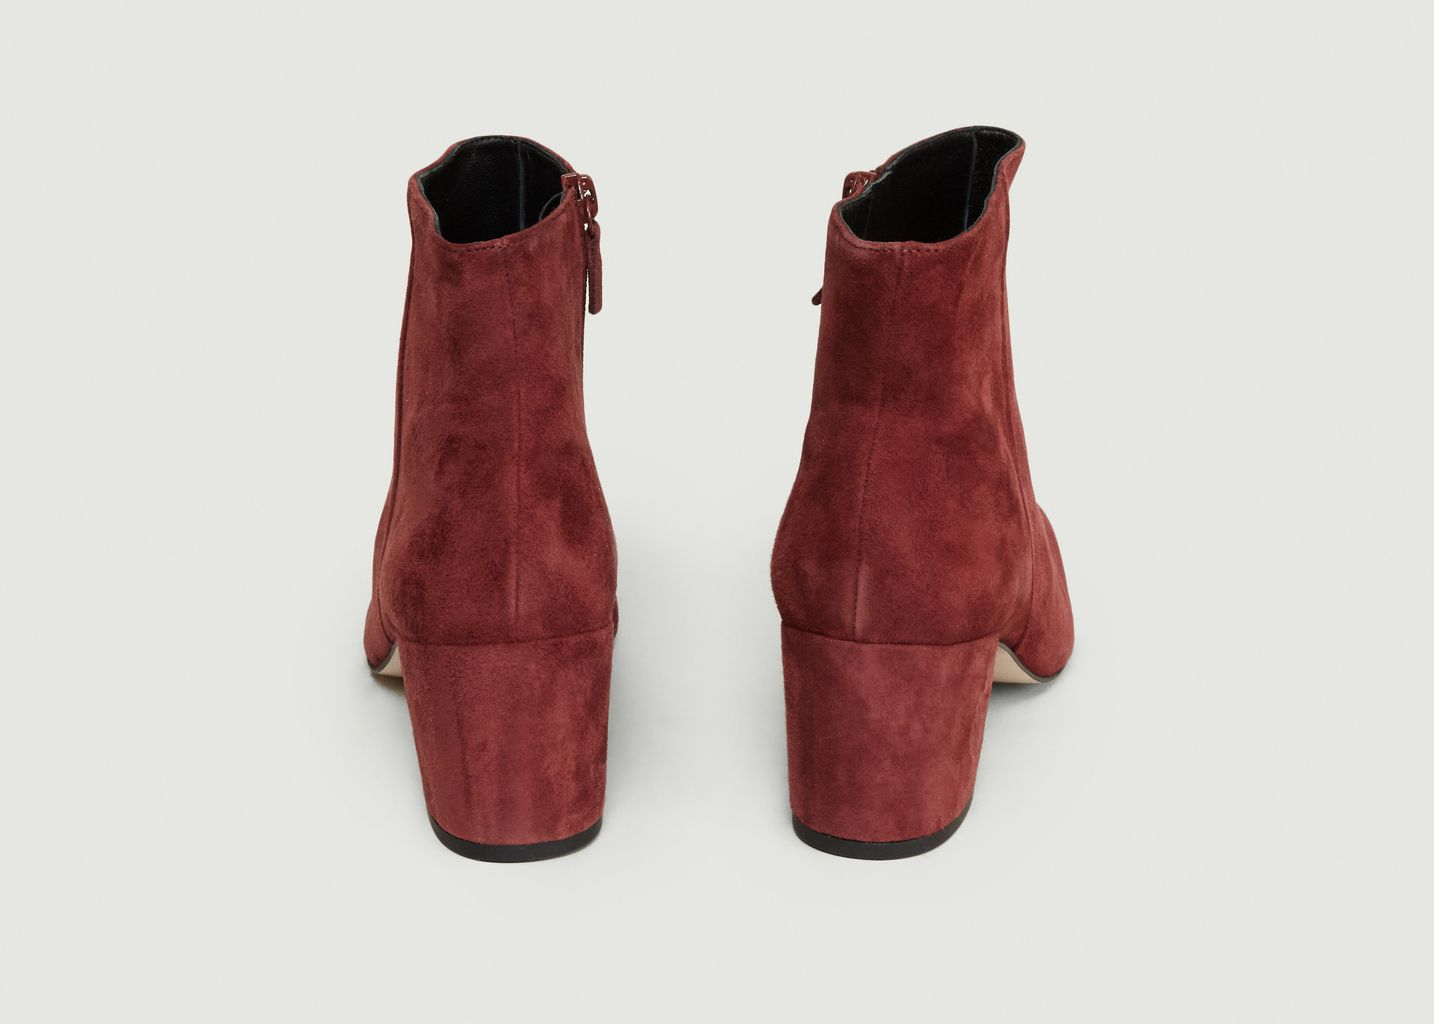 Boots En Cuir Velours April - Craie